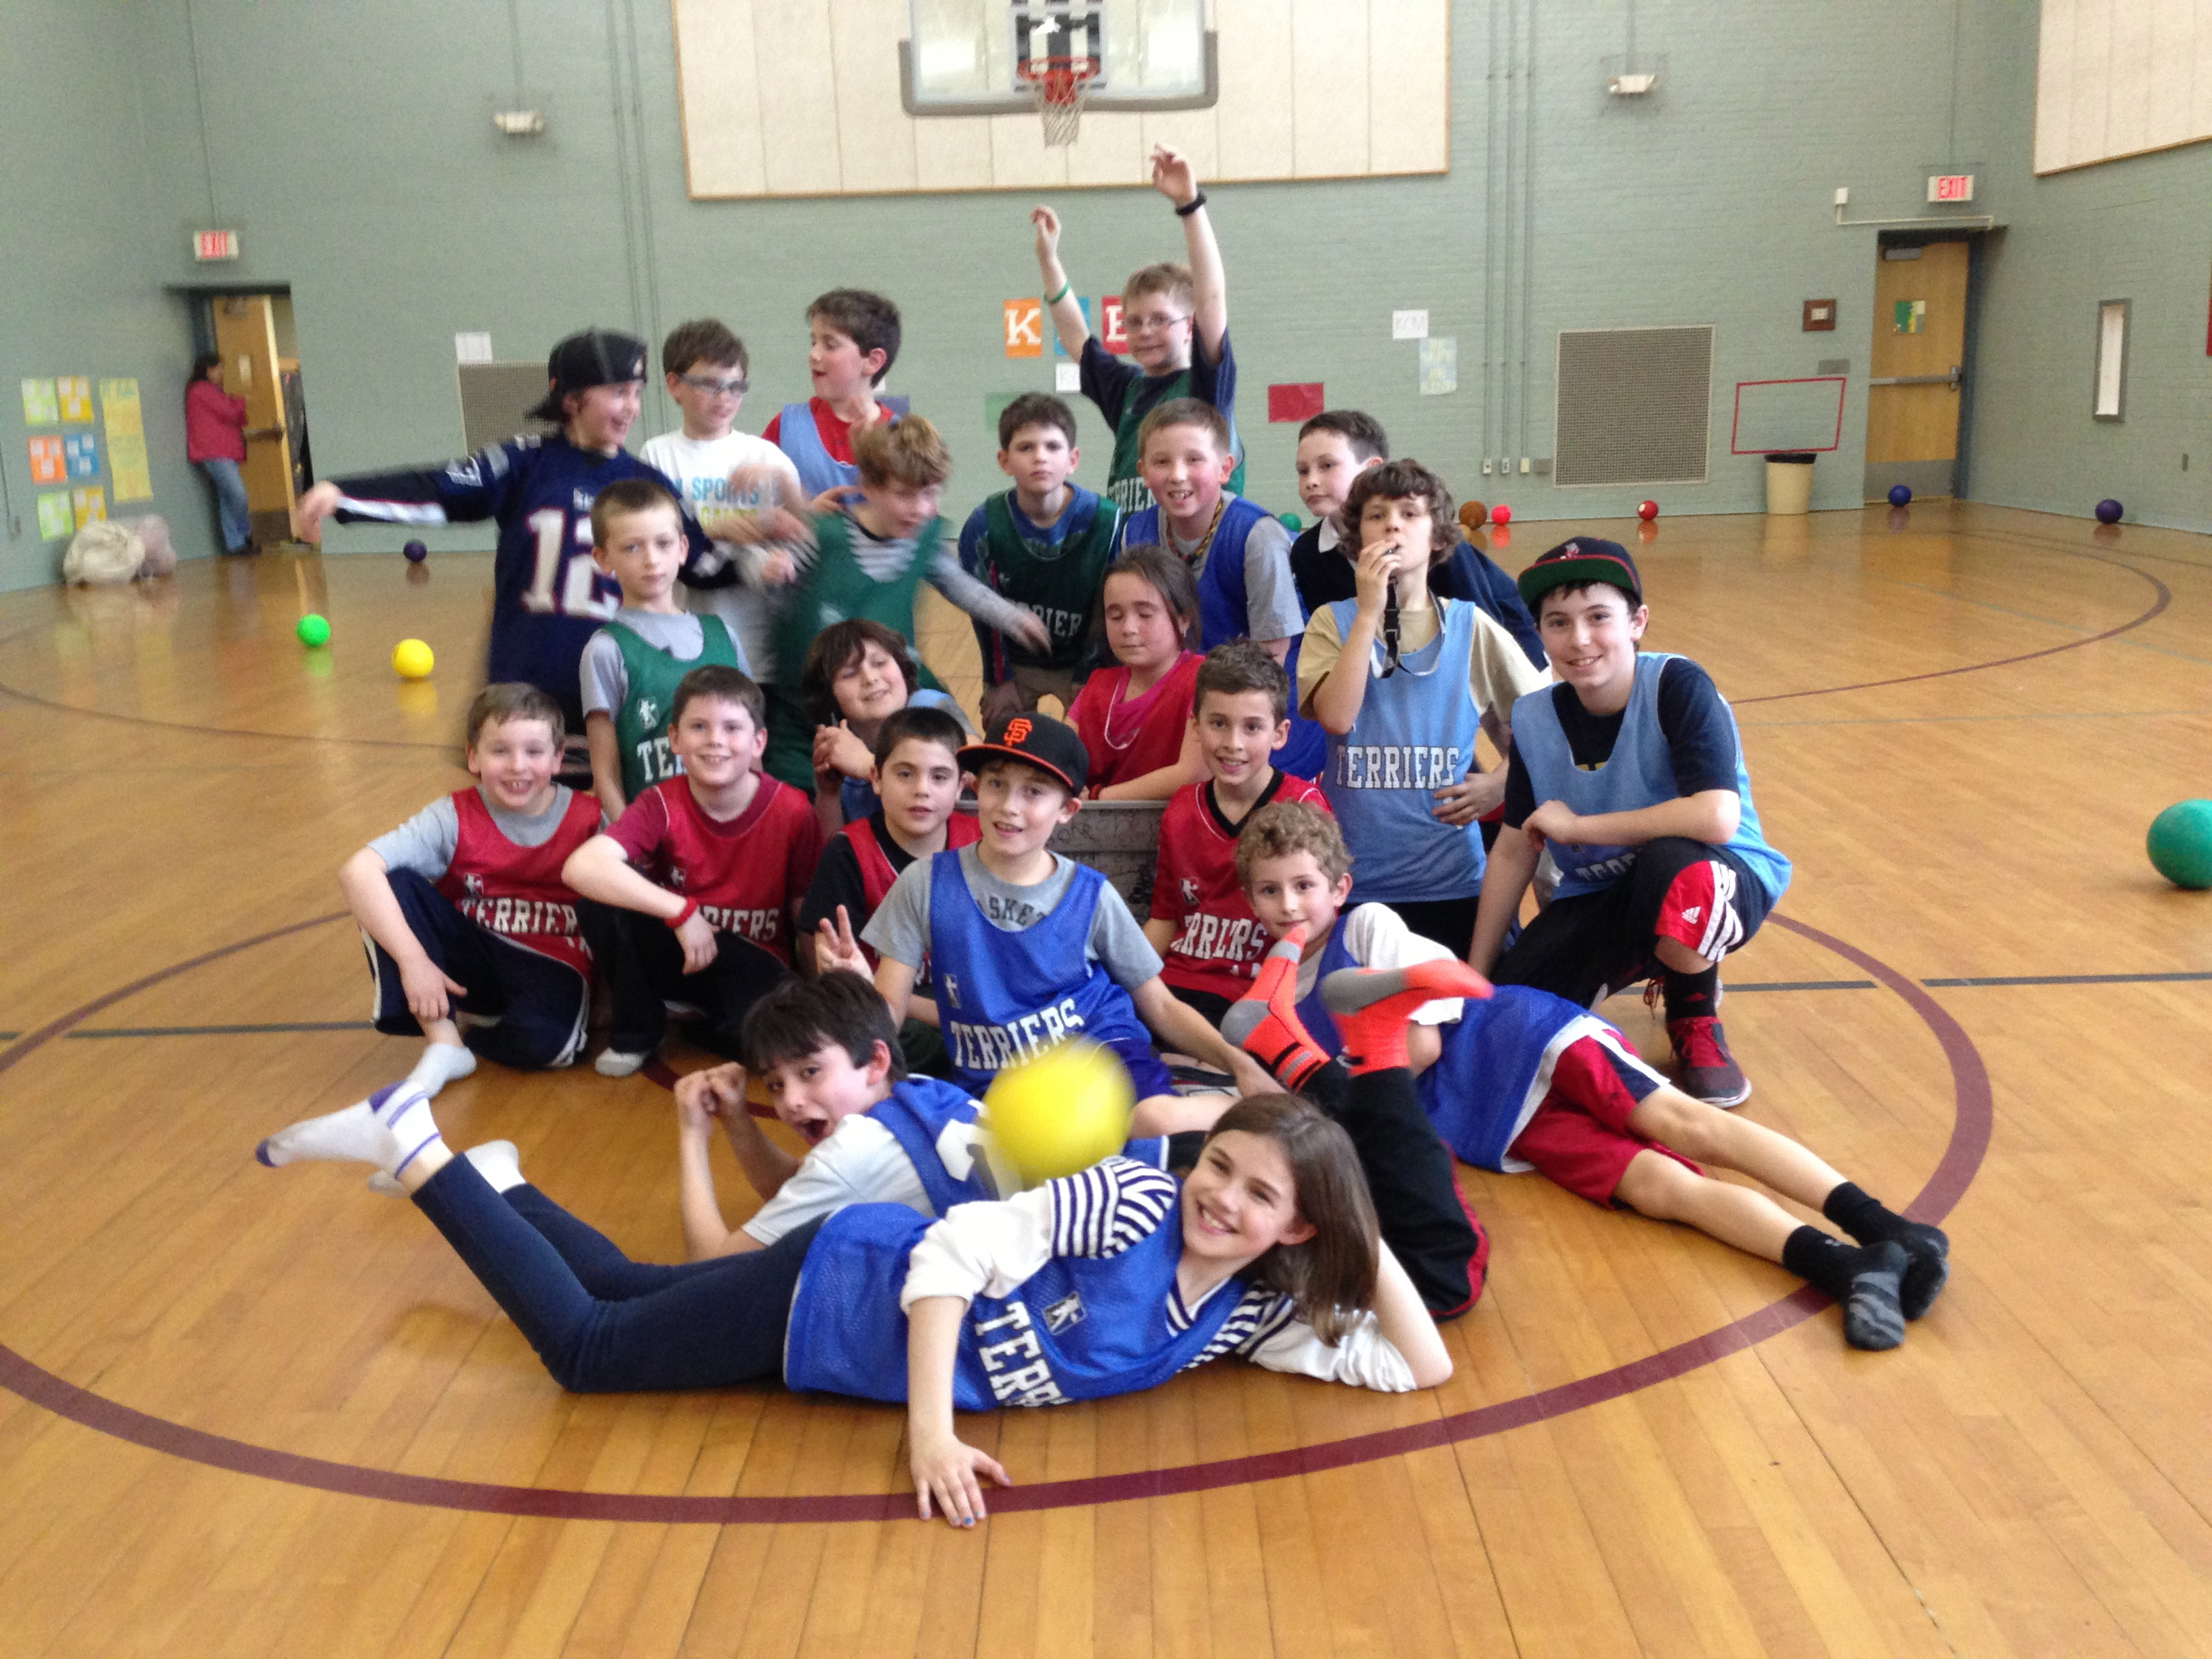 school sports School sports nl, st john's, newfoundland and labrador 1,727 likes 26 talking about this premier site for school sports in newfoundland & labrador.